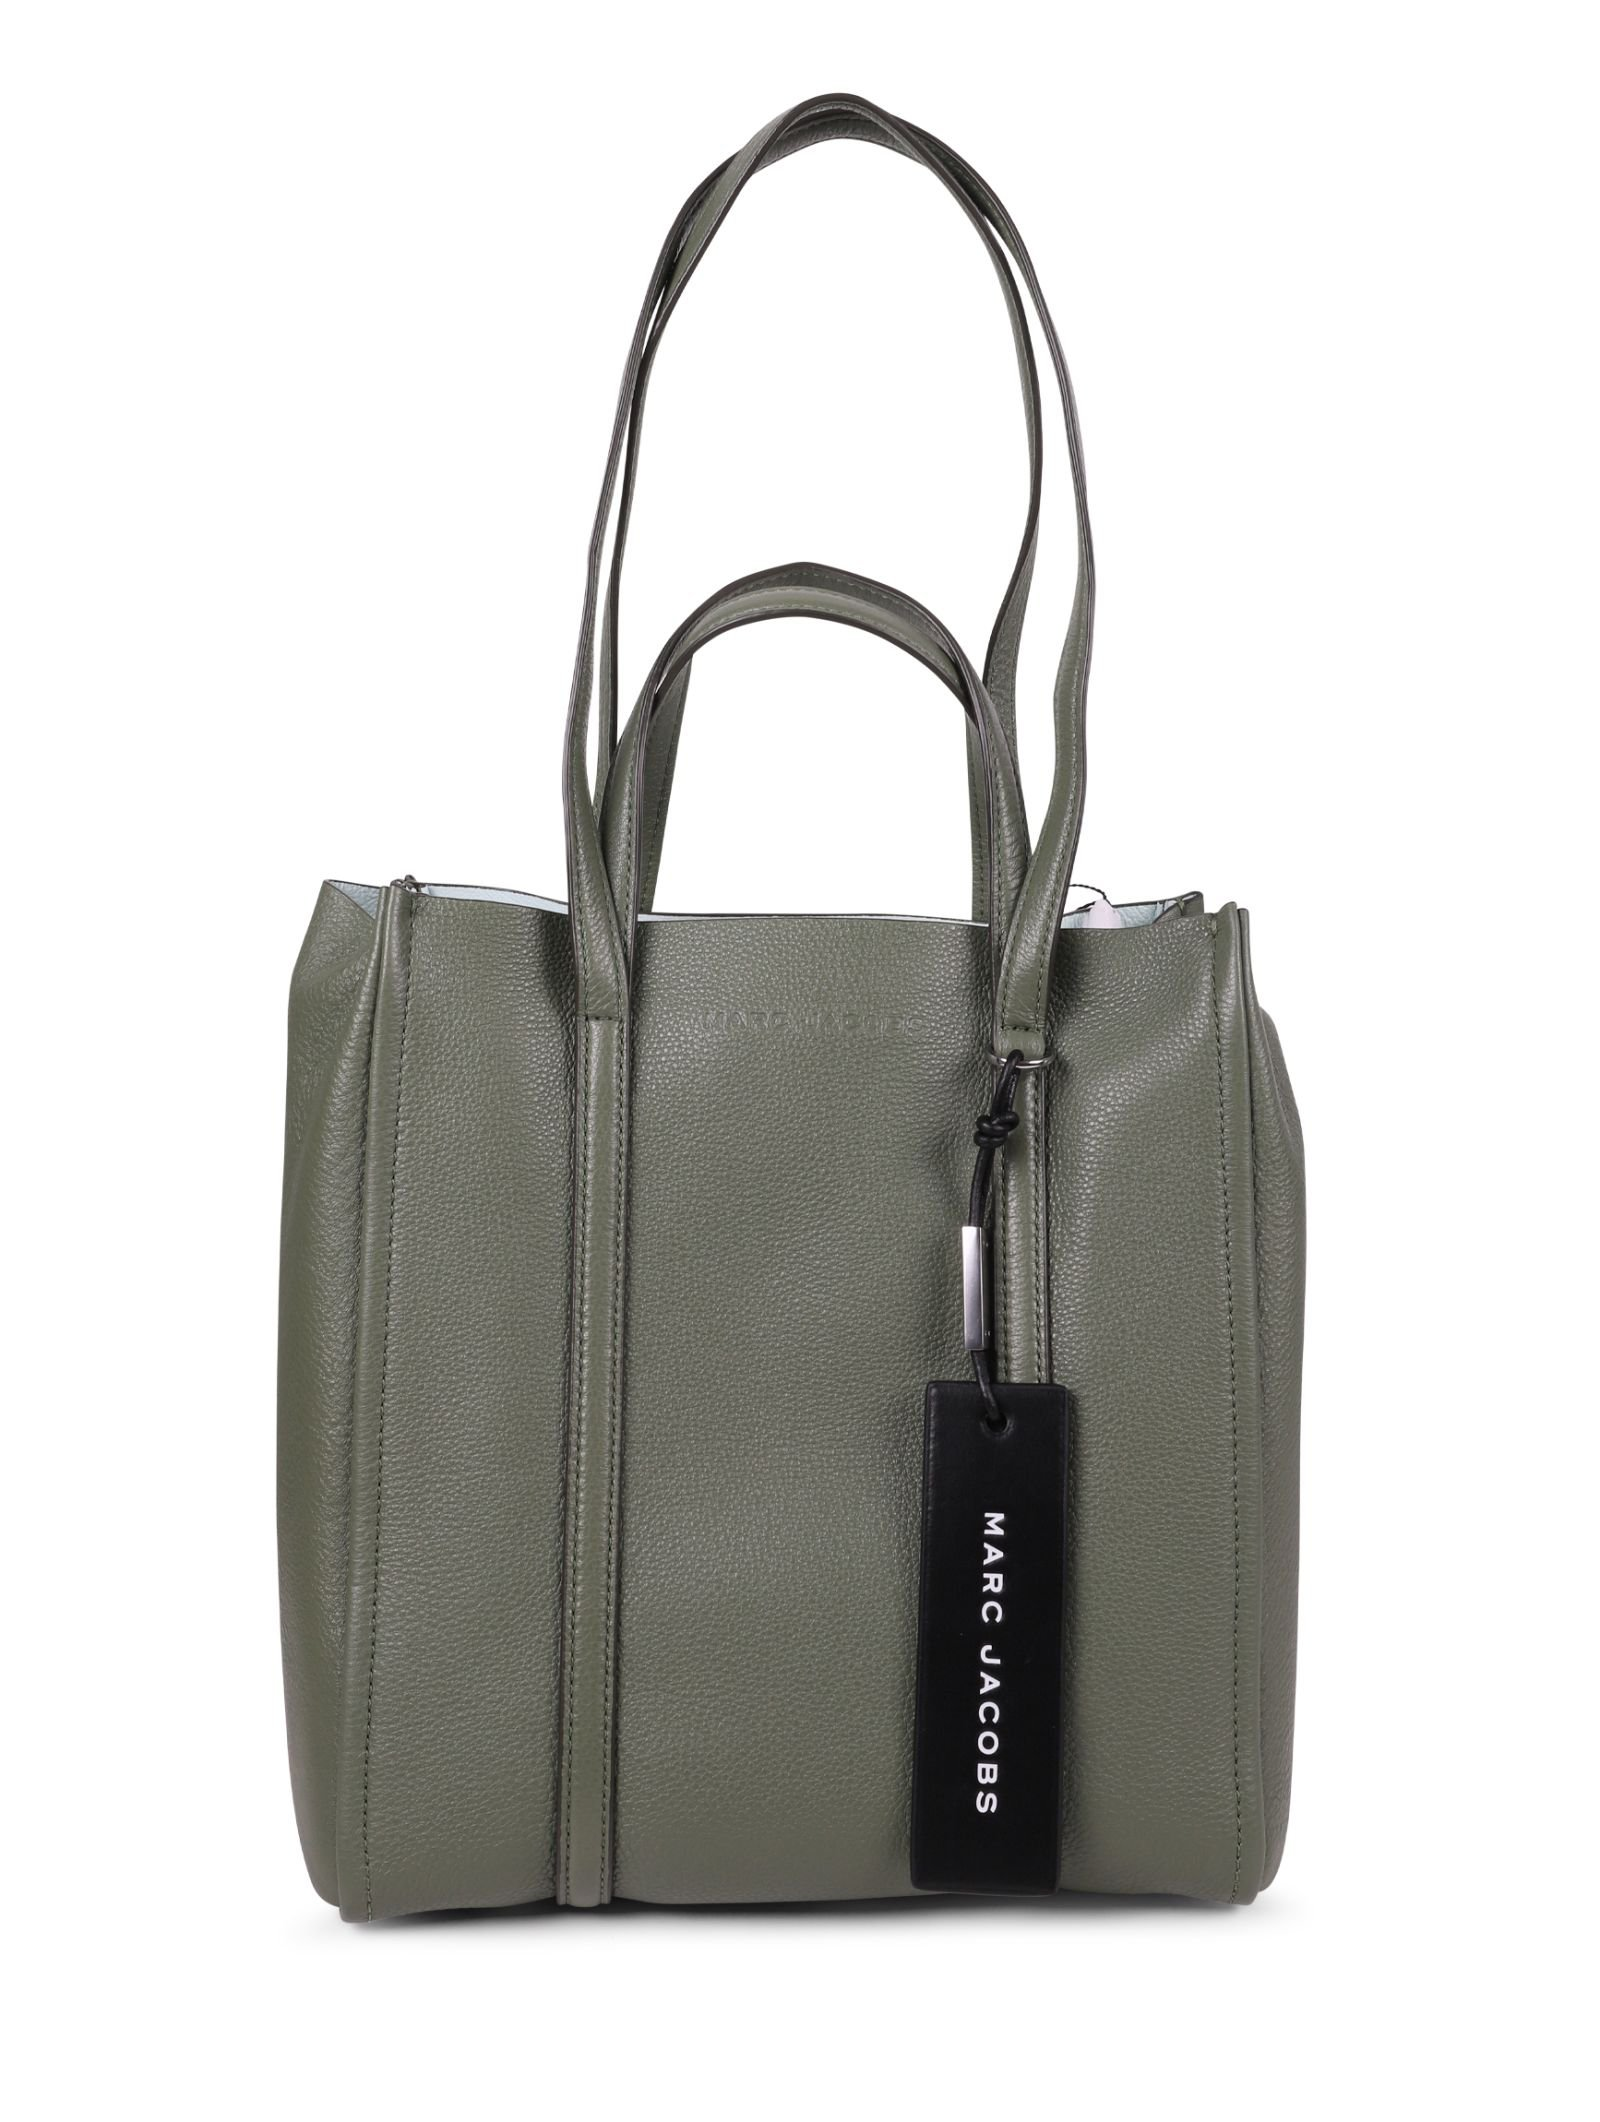 Marc Jacobs Sage Tag Tote 27 Bag